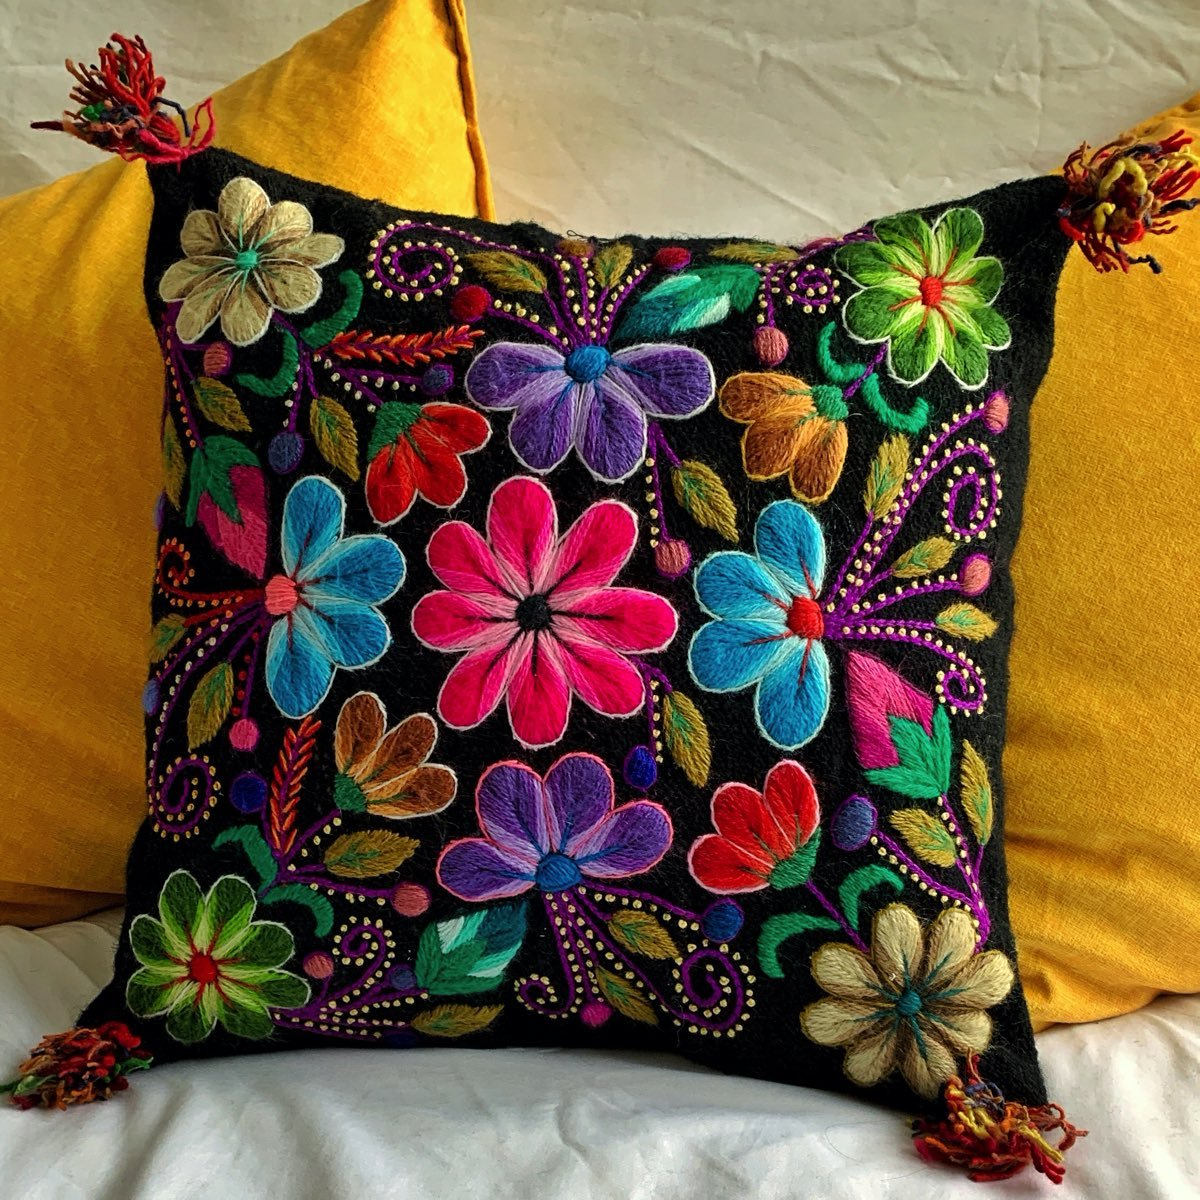 Hand Embroidered Cushion Cover Black Color Peruvian Wool Floral Design 16 Square Kusikrafts